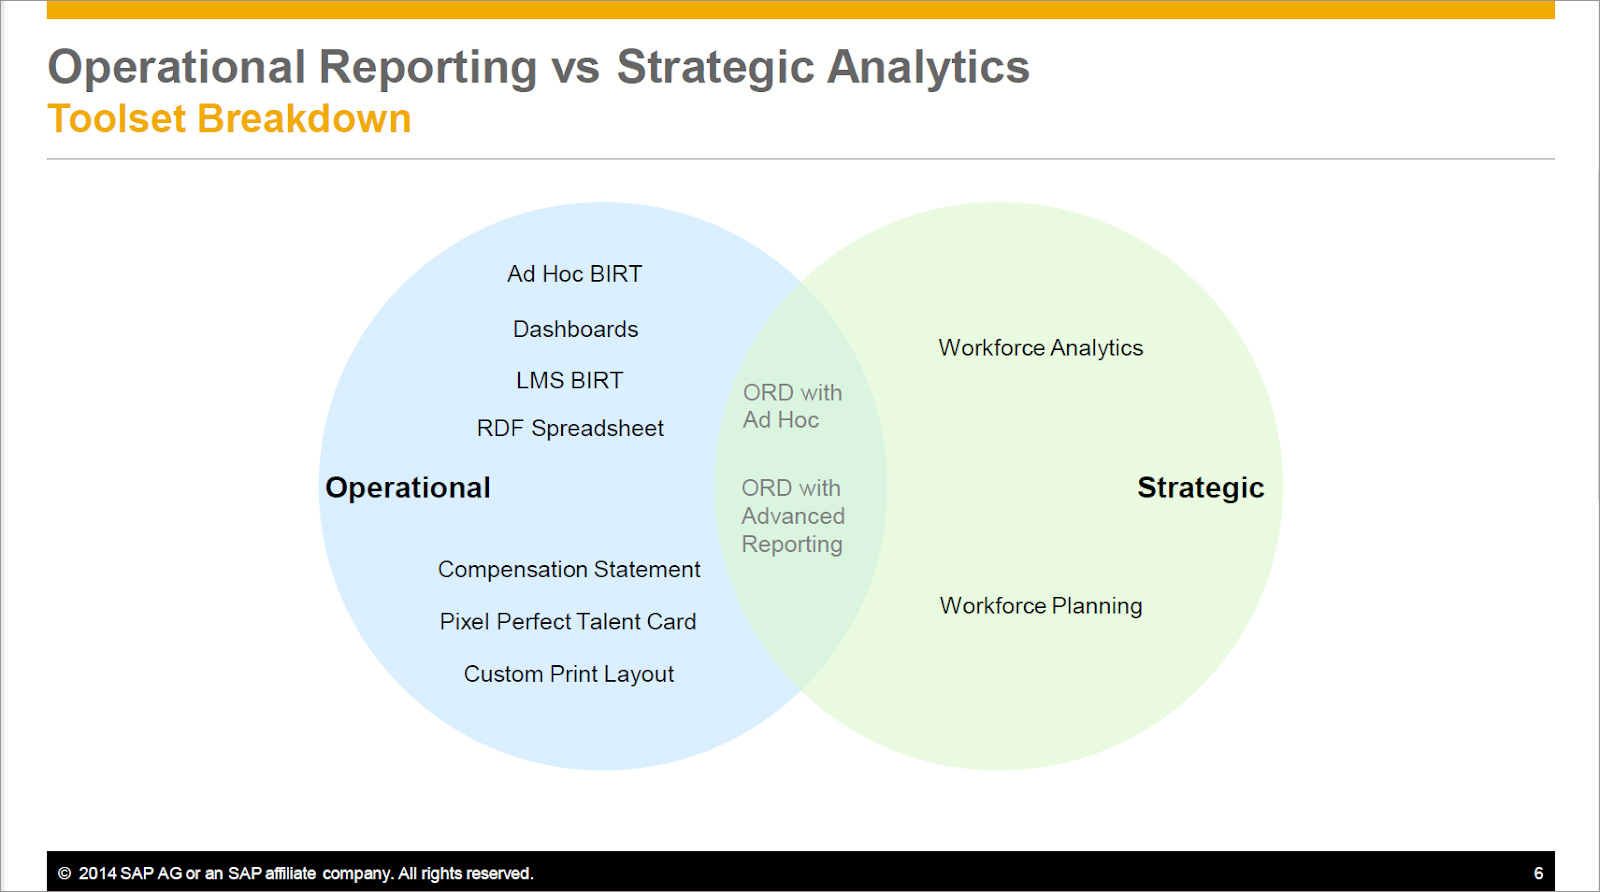 SuccessFactors Operational Reporting & Dashboards